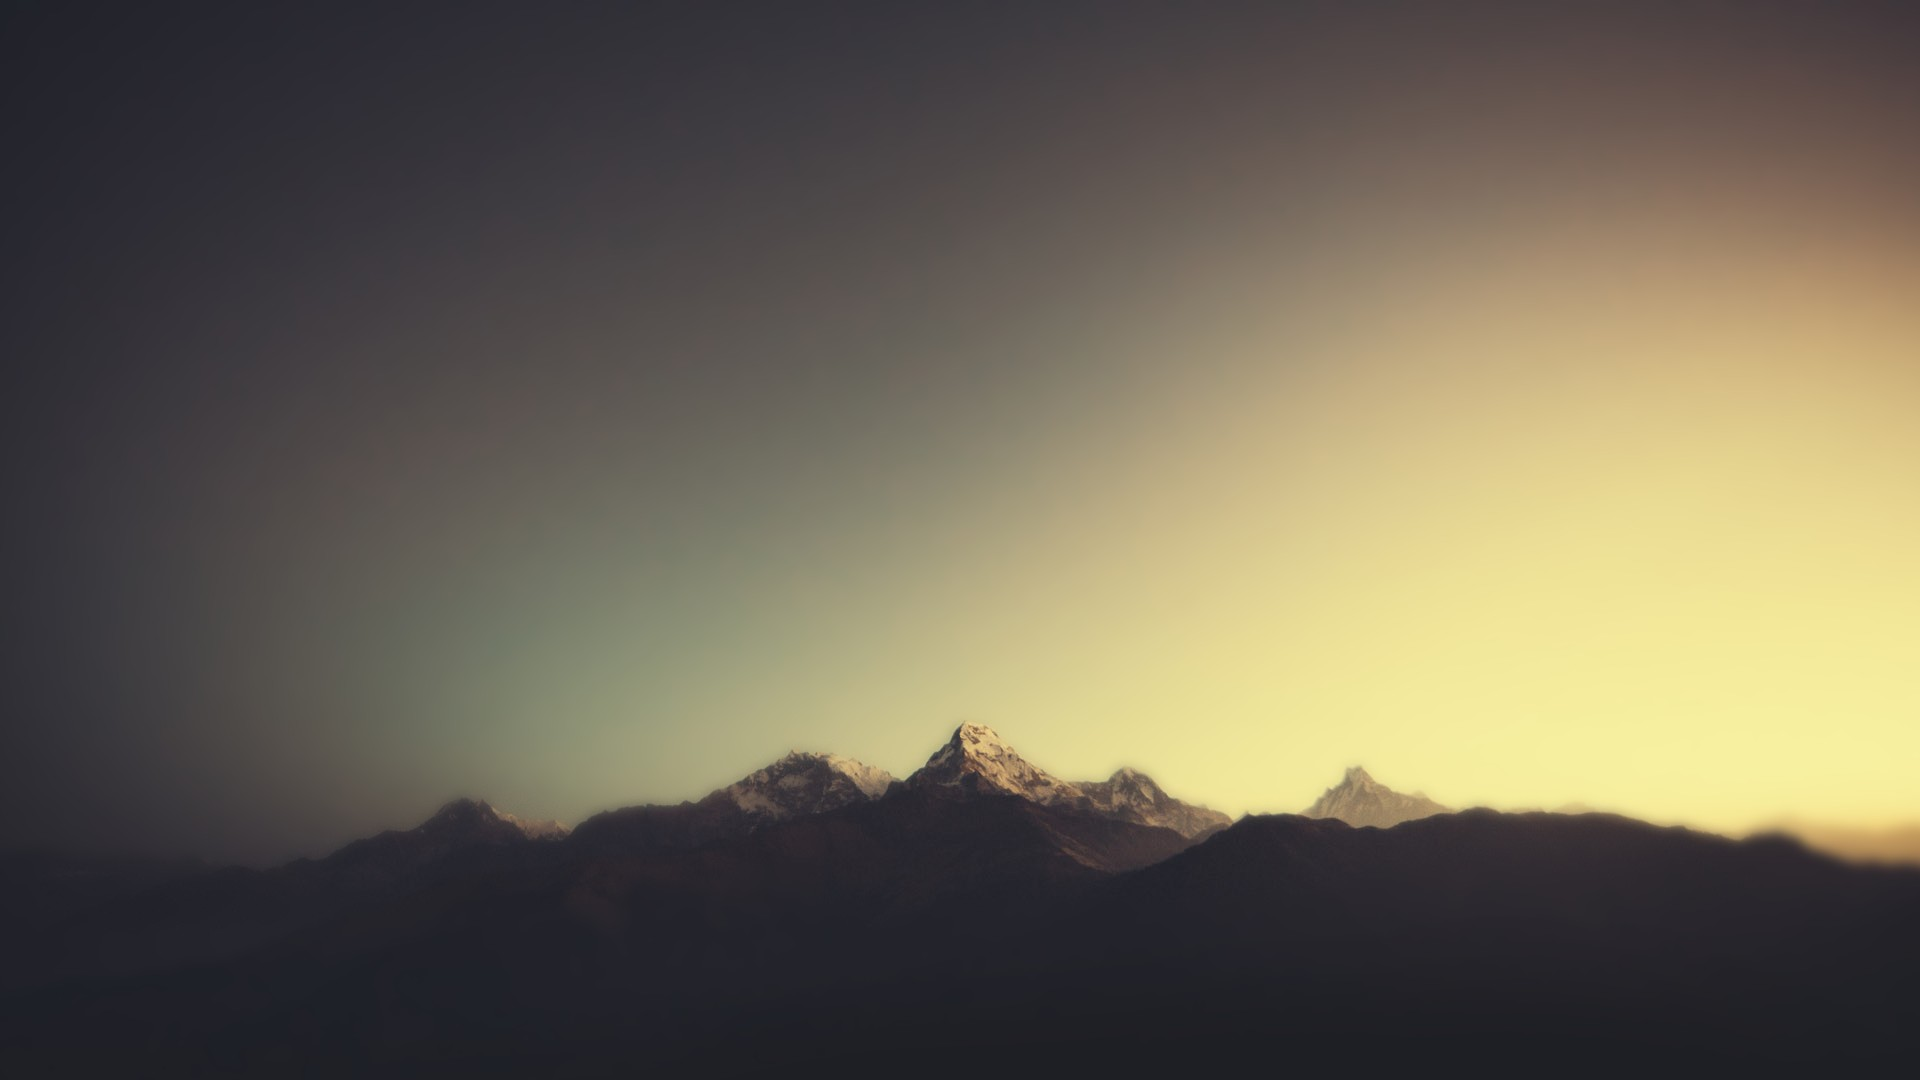 Minimalism Mountain Sunlight Hd Wallpapers Desktop And Mobile